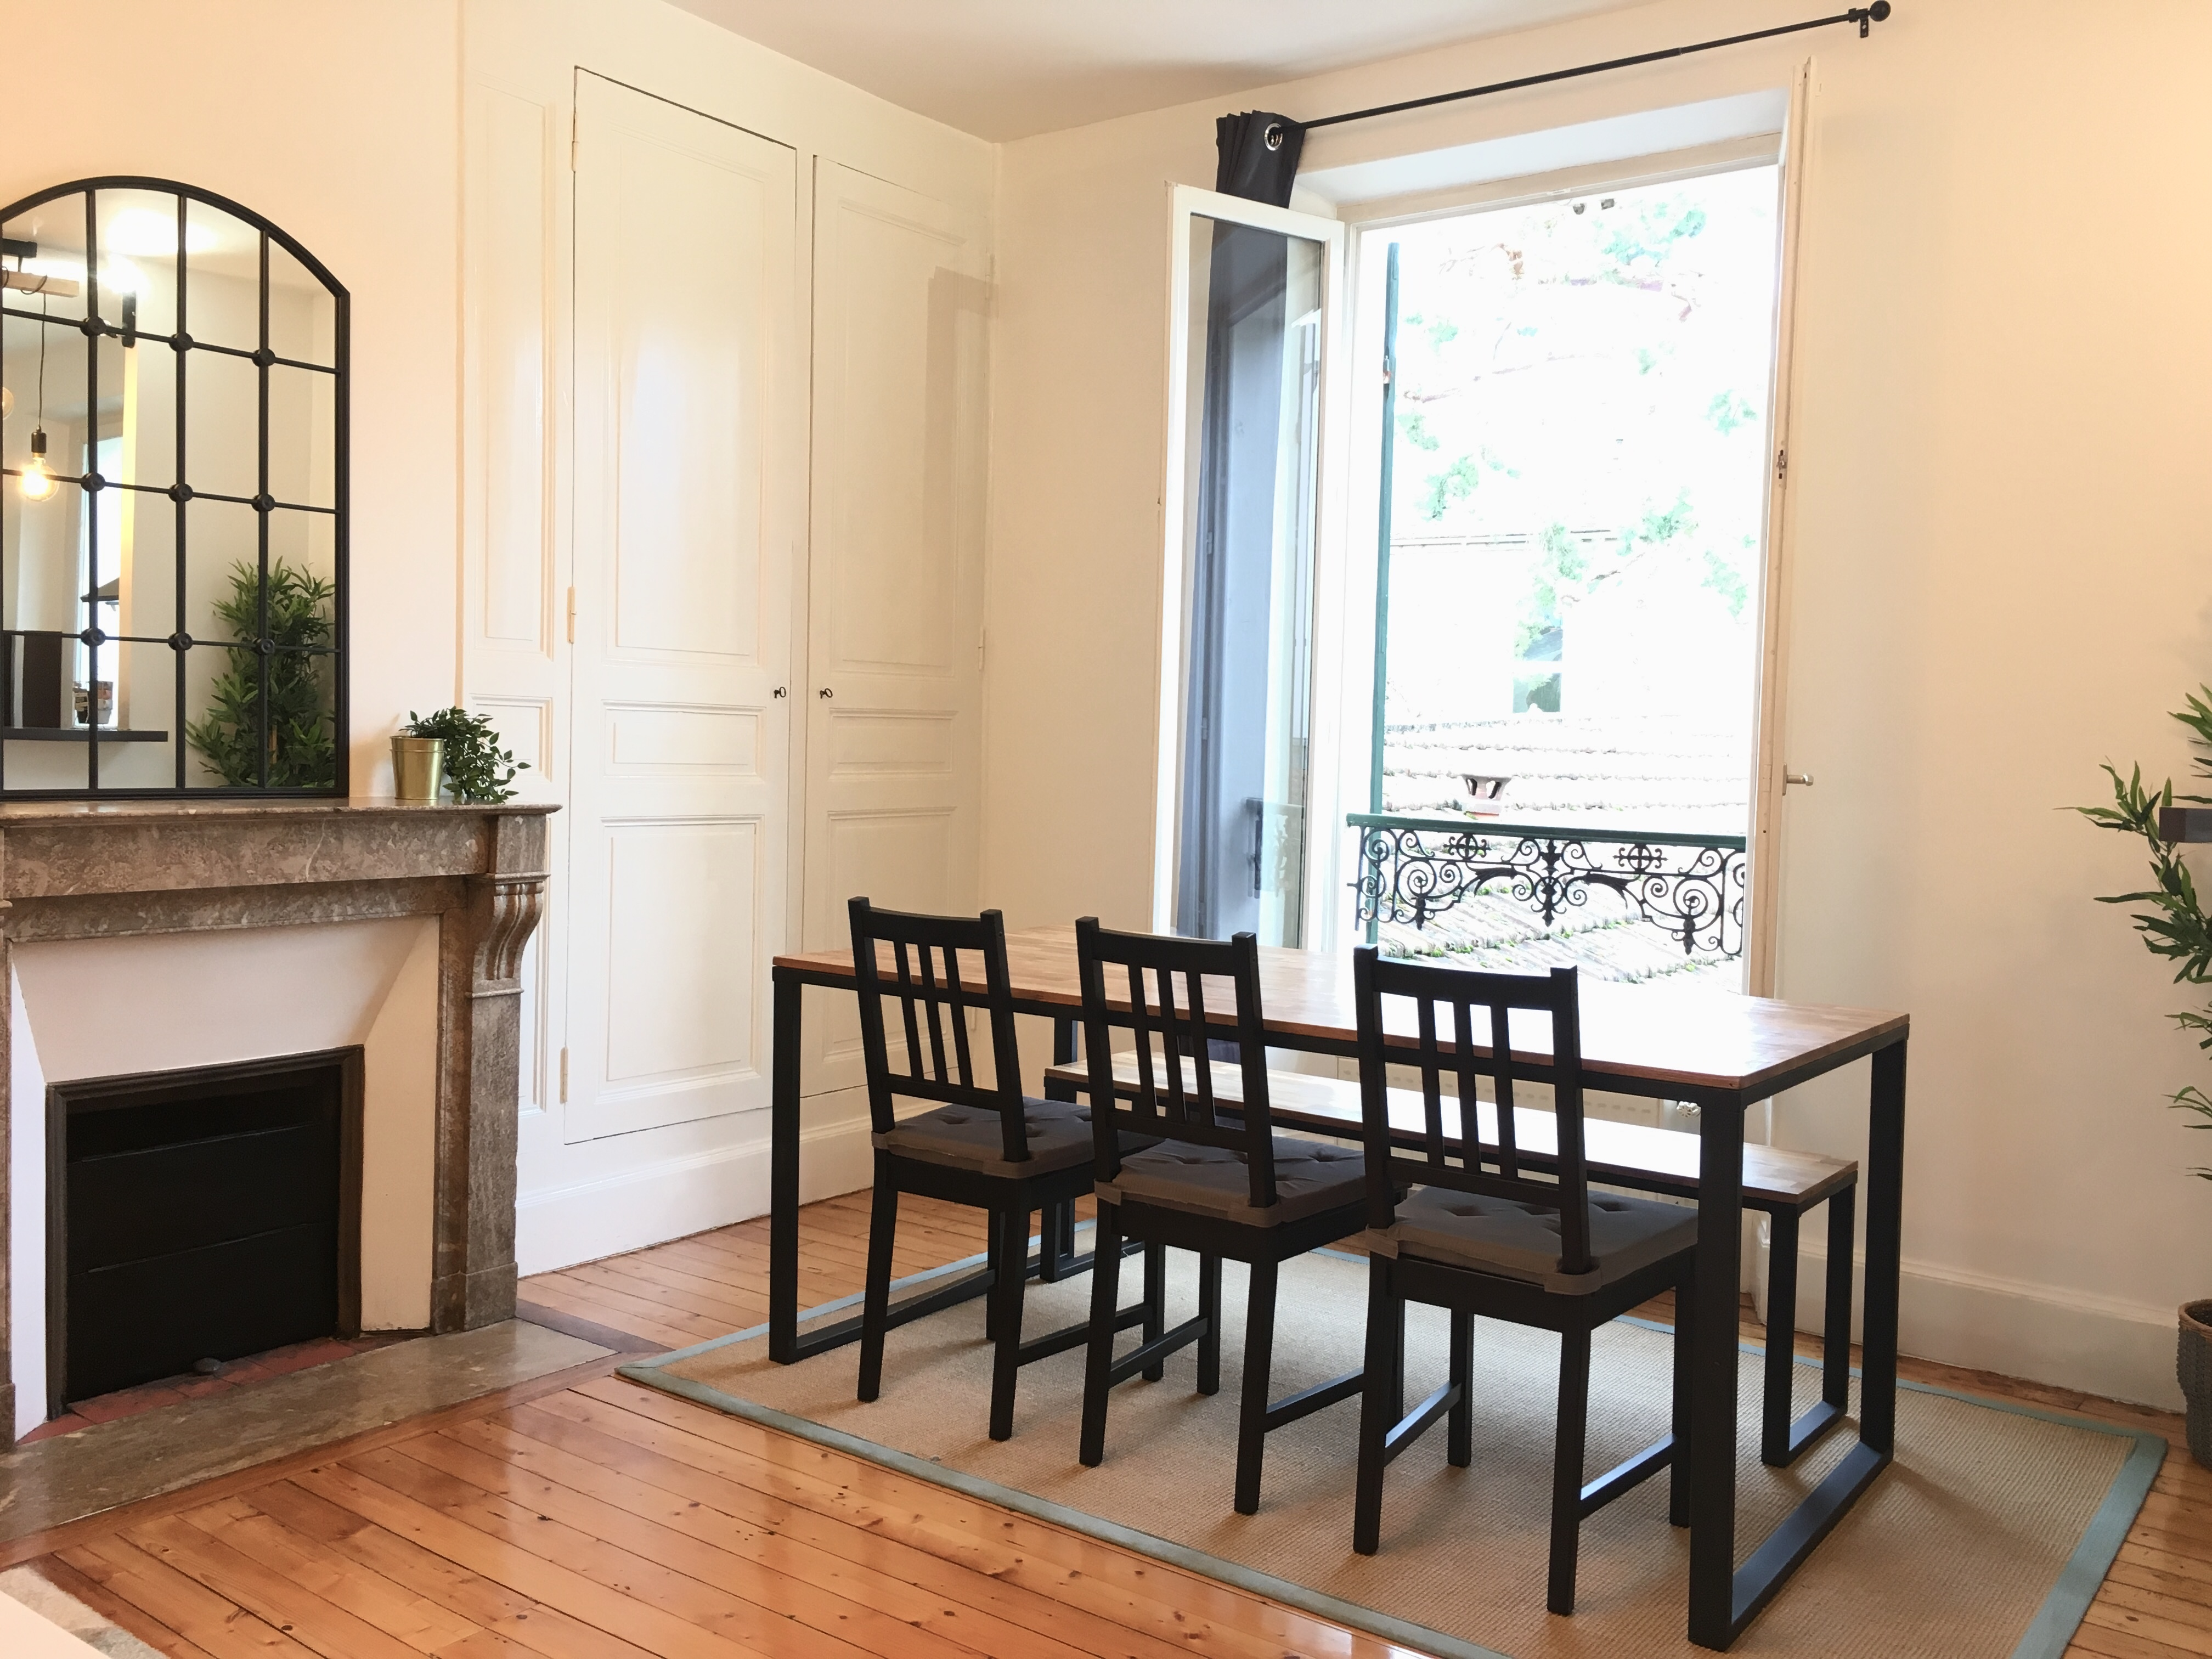 Rent Flat Apartment Fontainebleau Insead student housing DN 1